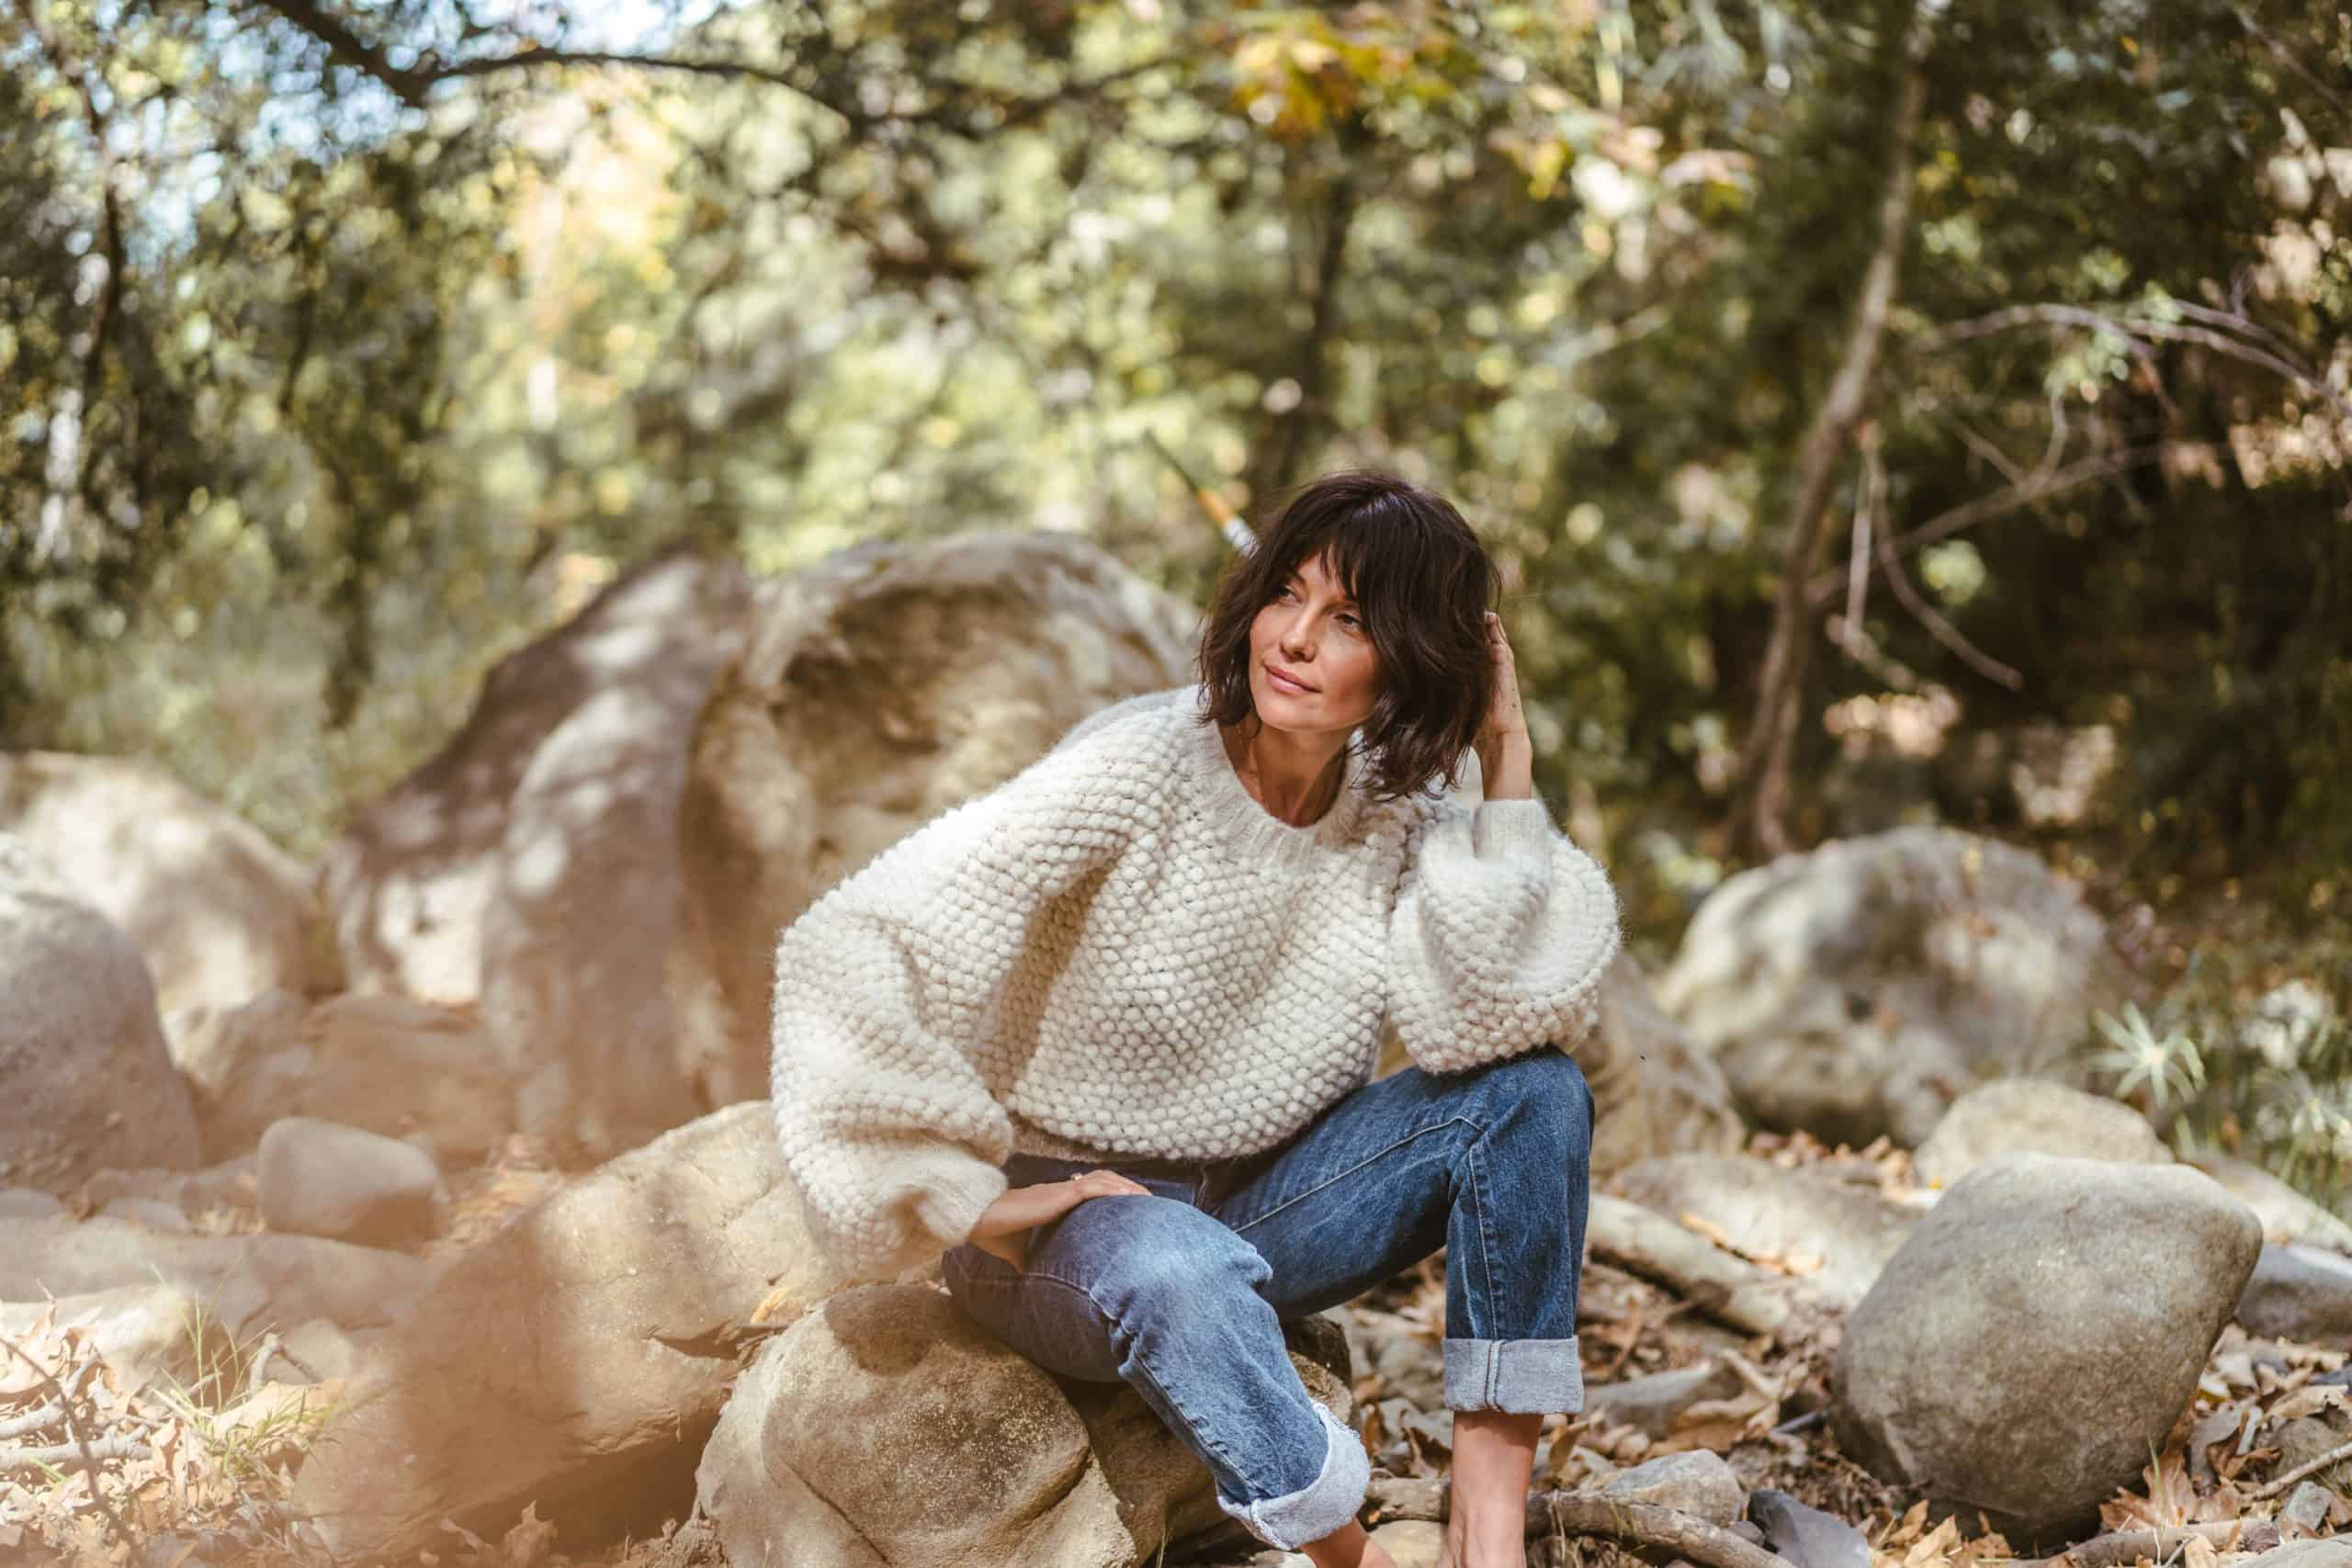 st-roche-sustainable-luxury-clothing-22